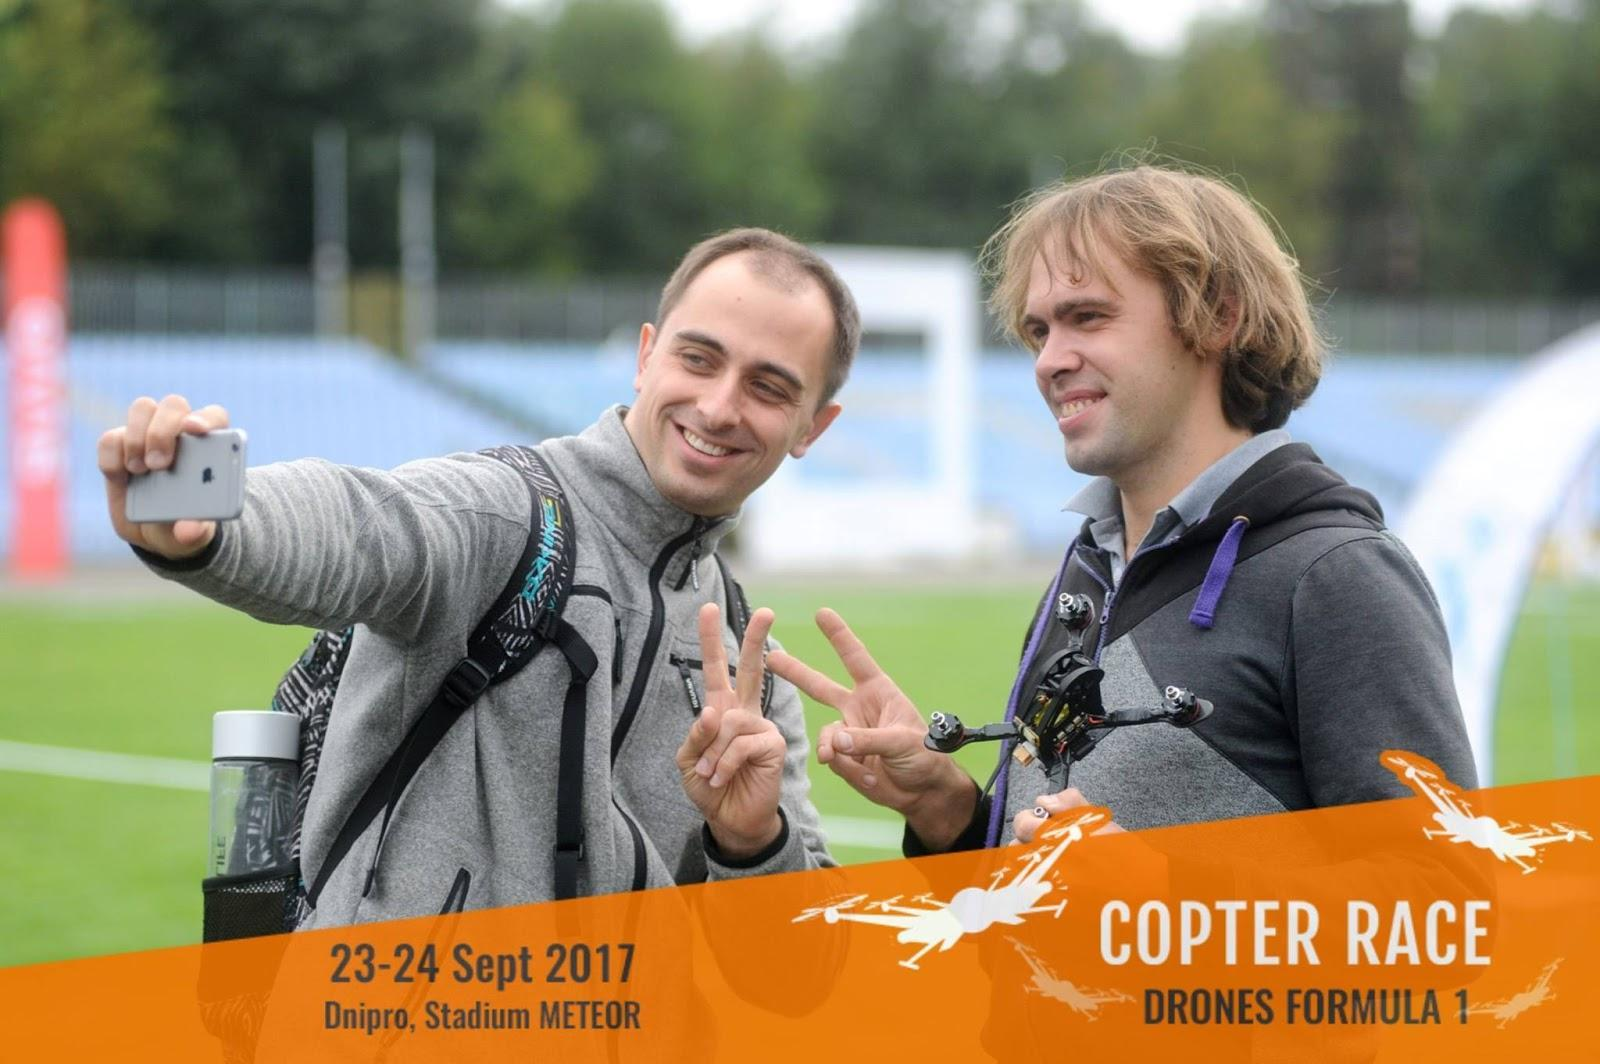 Dnipro, Ukraine, Staged For International Drone-Racing Competitions Powered By Max Polyakov